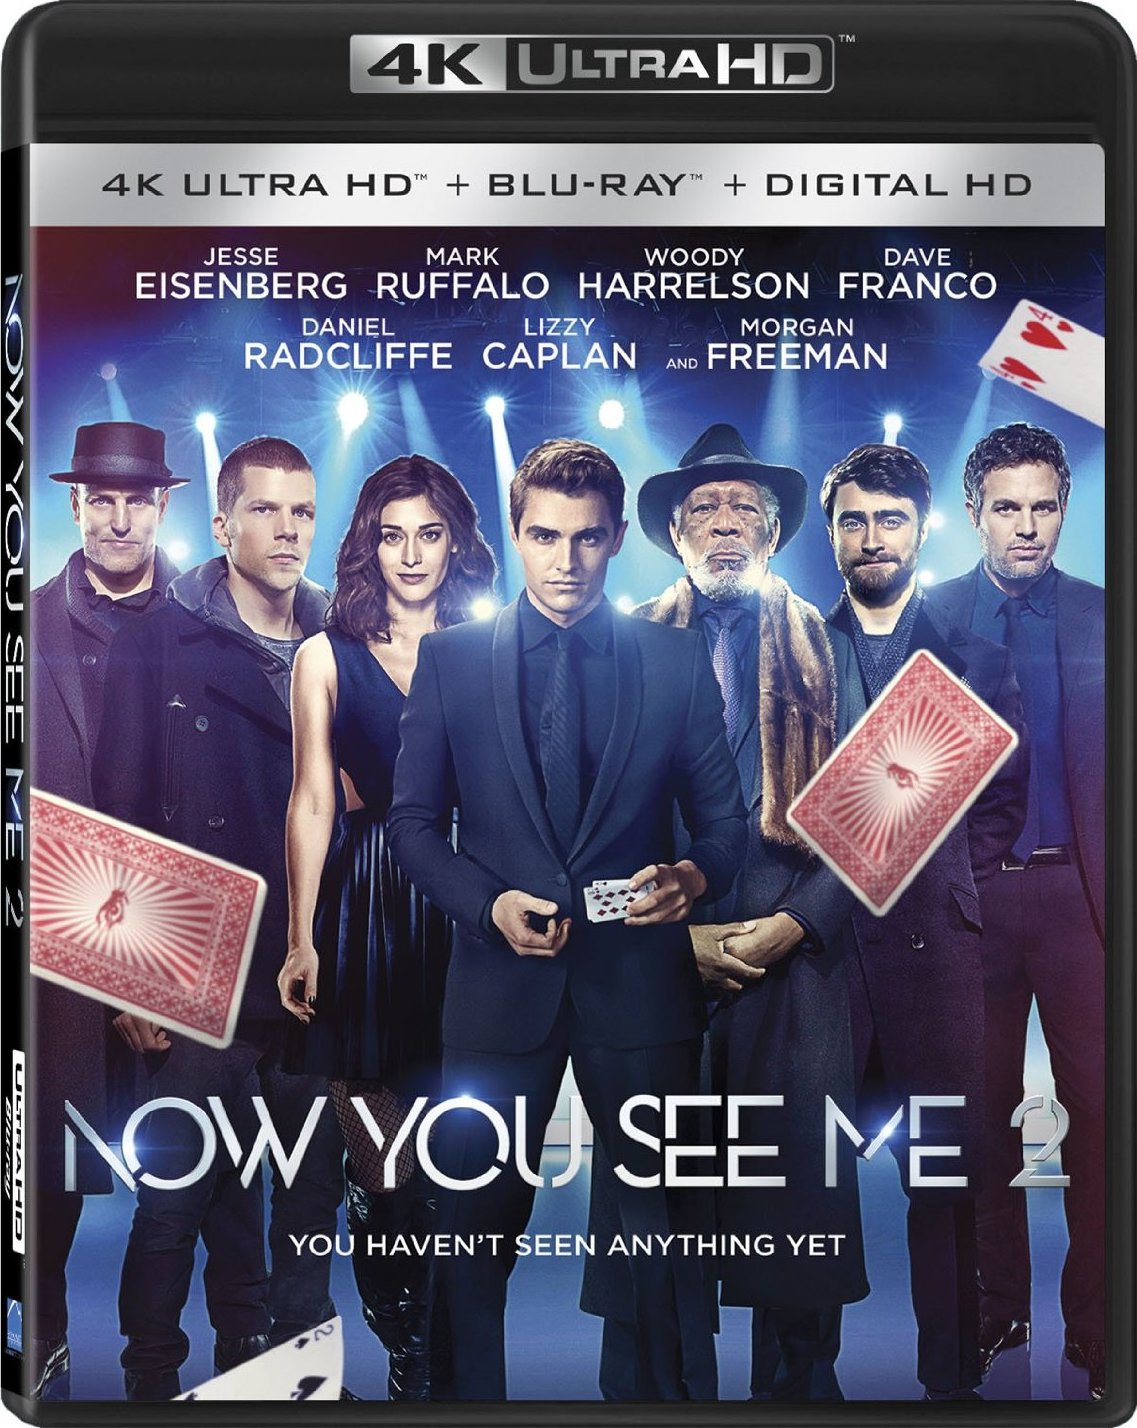 Download Film Now You See Me 2 Bluray 720p : download, bluray, Movie, Download, Audio, Blu-ray, 9xmovies.org-pagalwarld.com-moviescounter.com-mp4mobilemovies.net-mp4moviez.in-clubmp4.com-moviesden.in-moviesmaza.in-hdmobilemovies.org-songs.pk